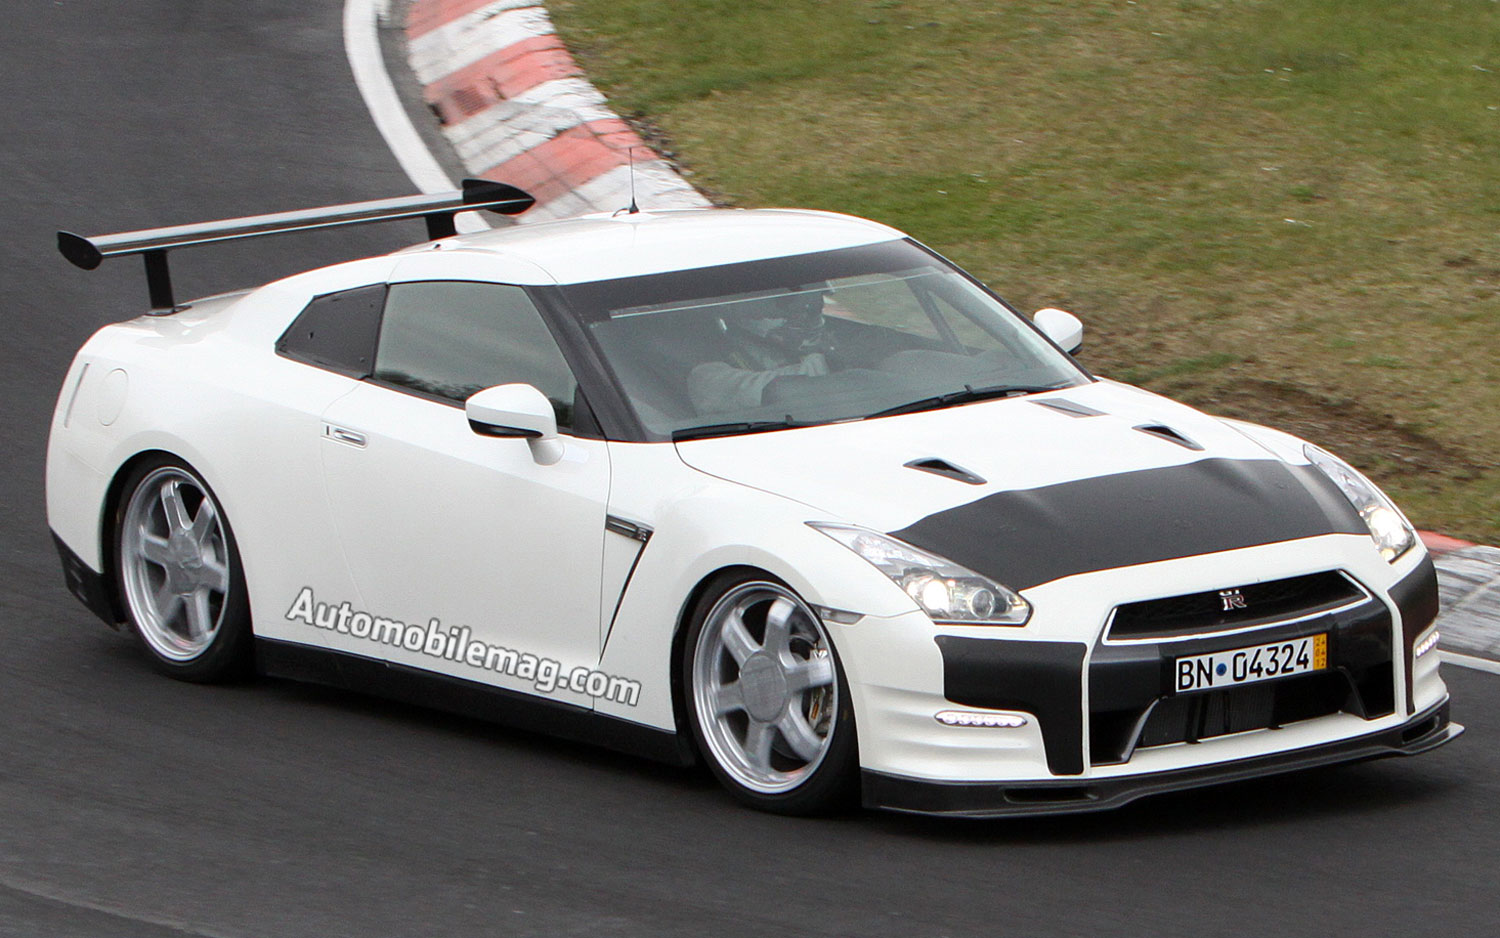 2012 Nissan GT R Nurburgring Racer Prototype Front Three Quarters View1